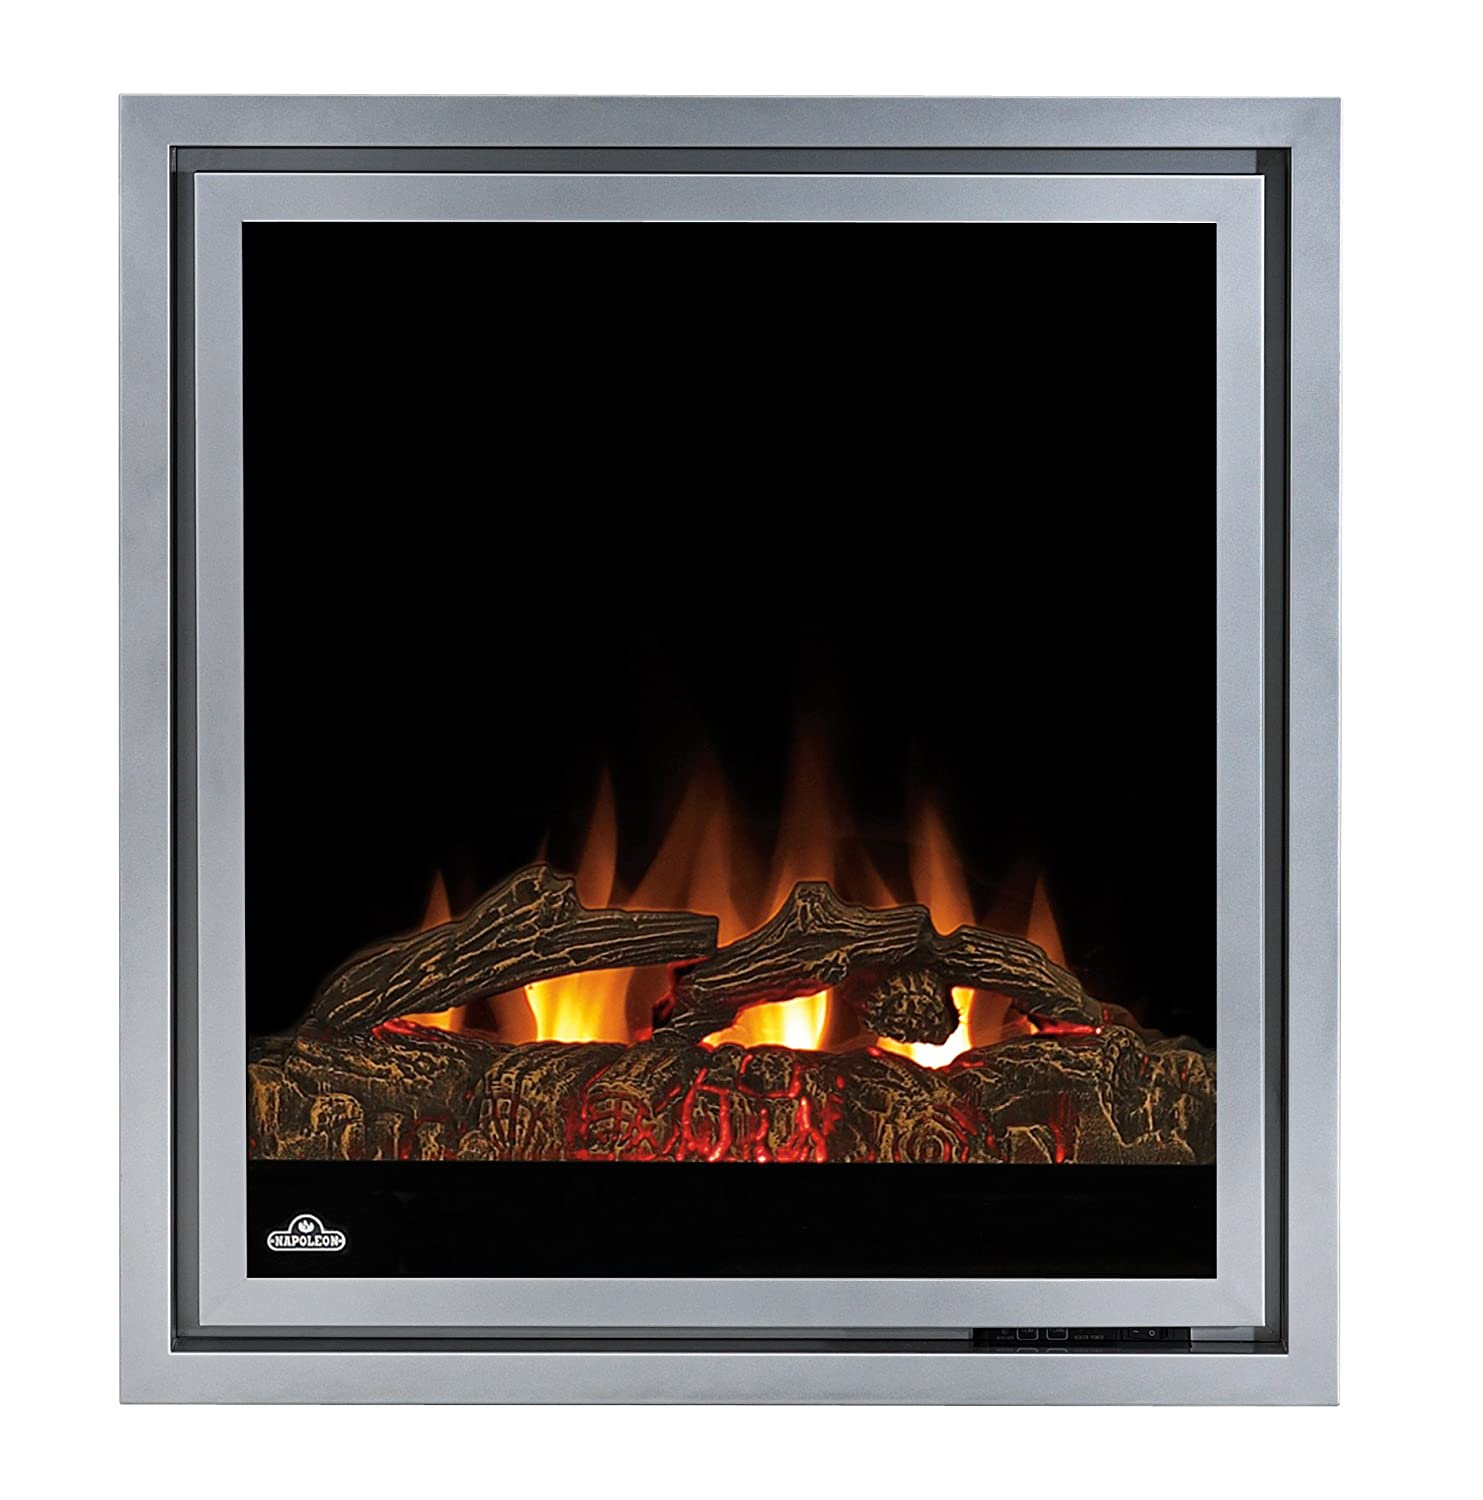 amazon com napoleon ef30 electric fireplace insert 30 inch home rh amazon com  dimplex 30-inch plug-in electric fireplace insert